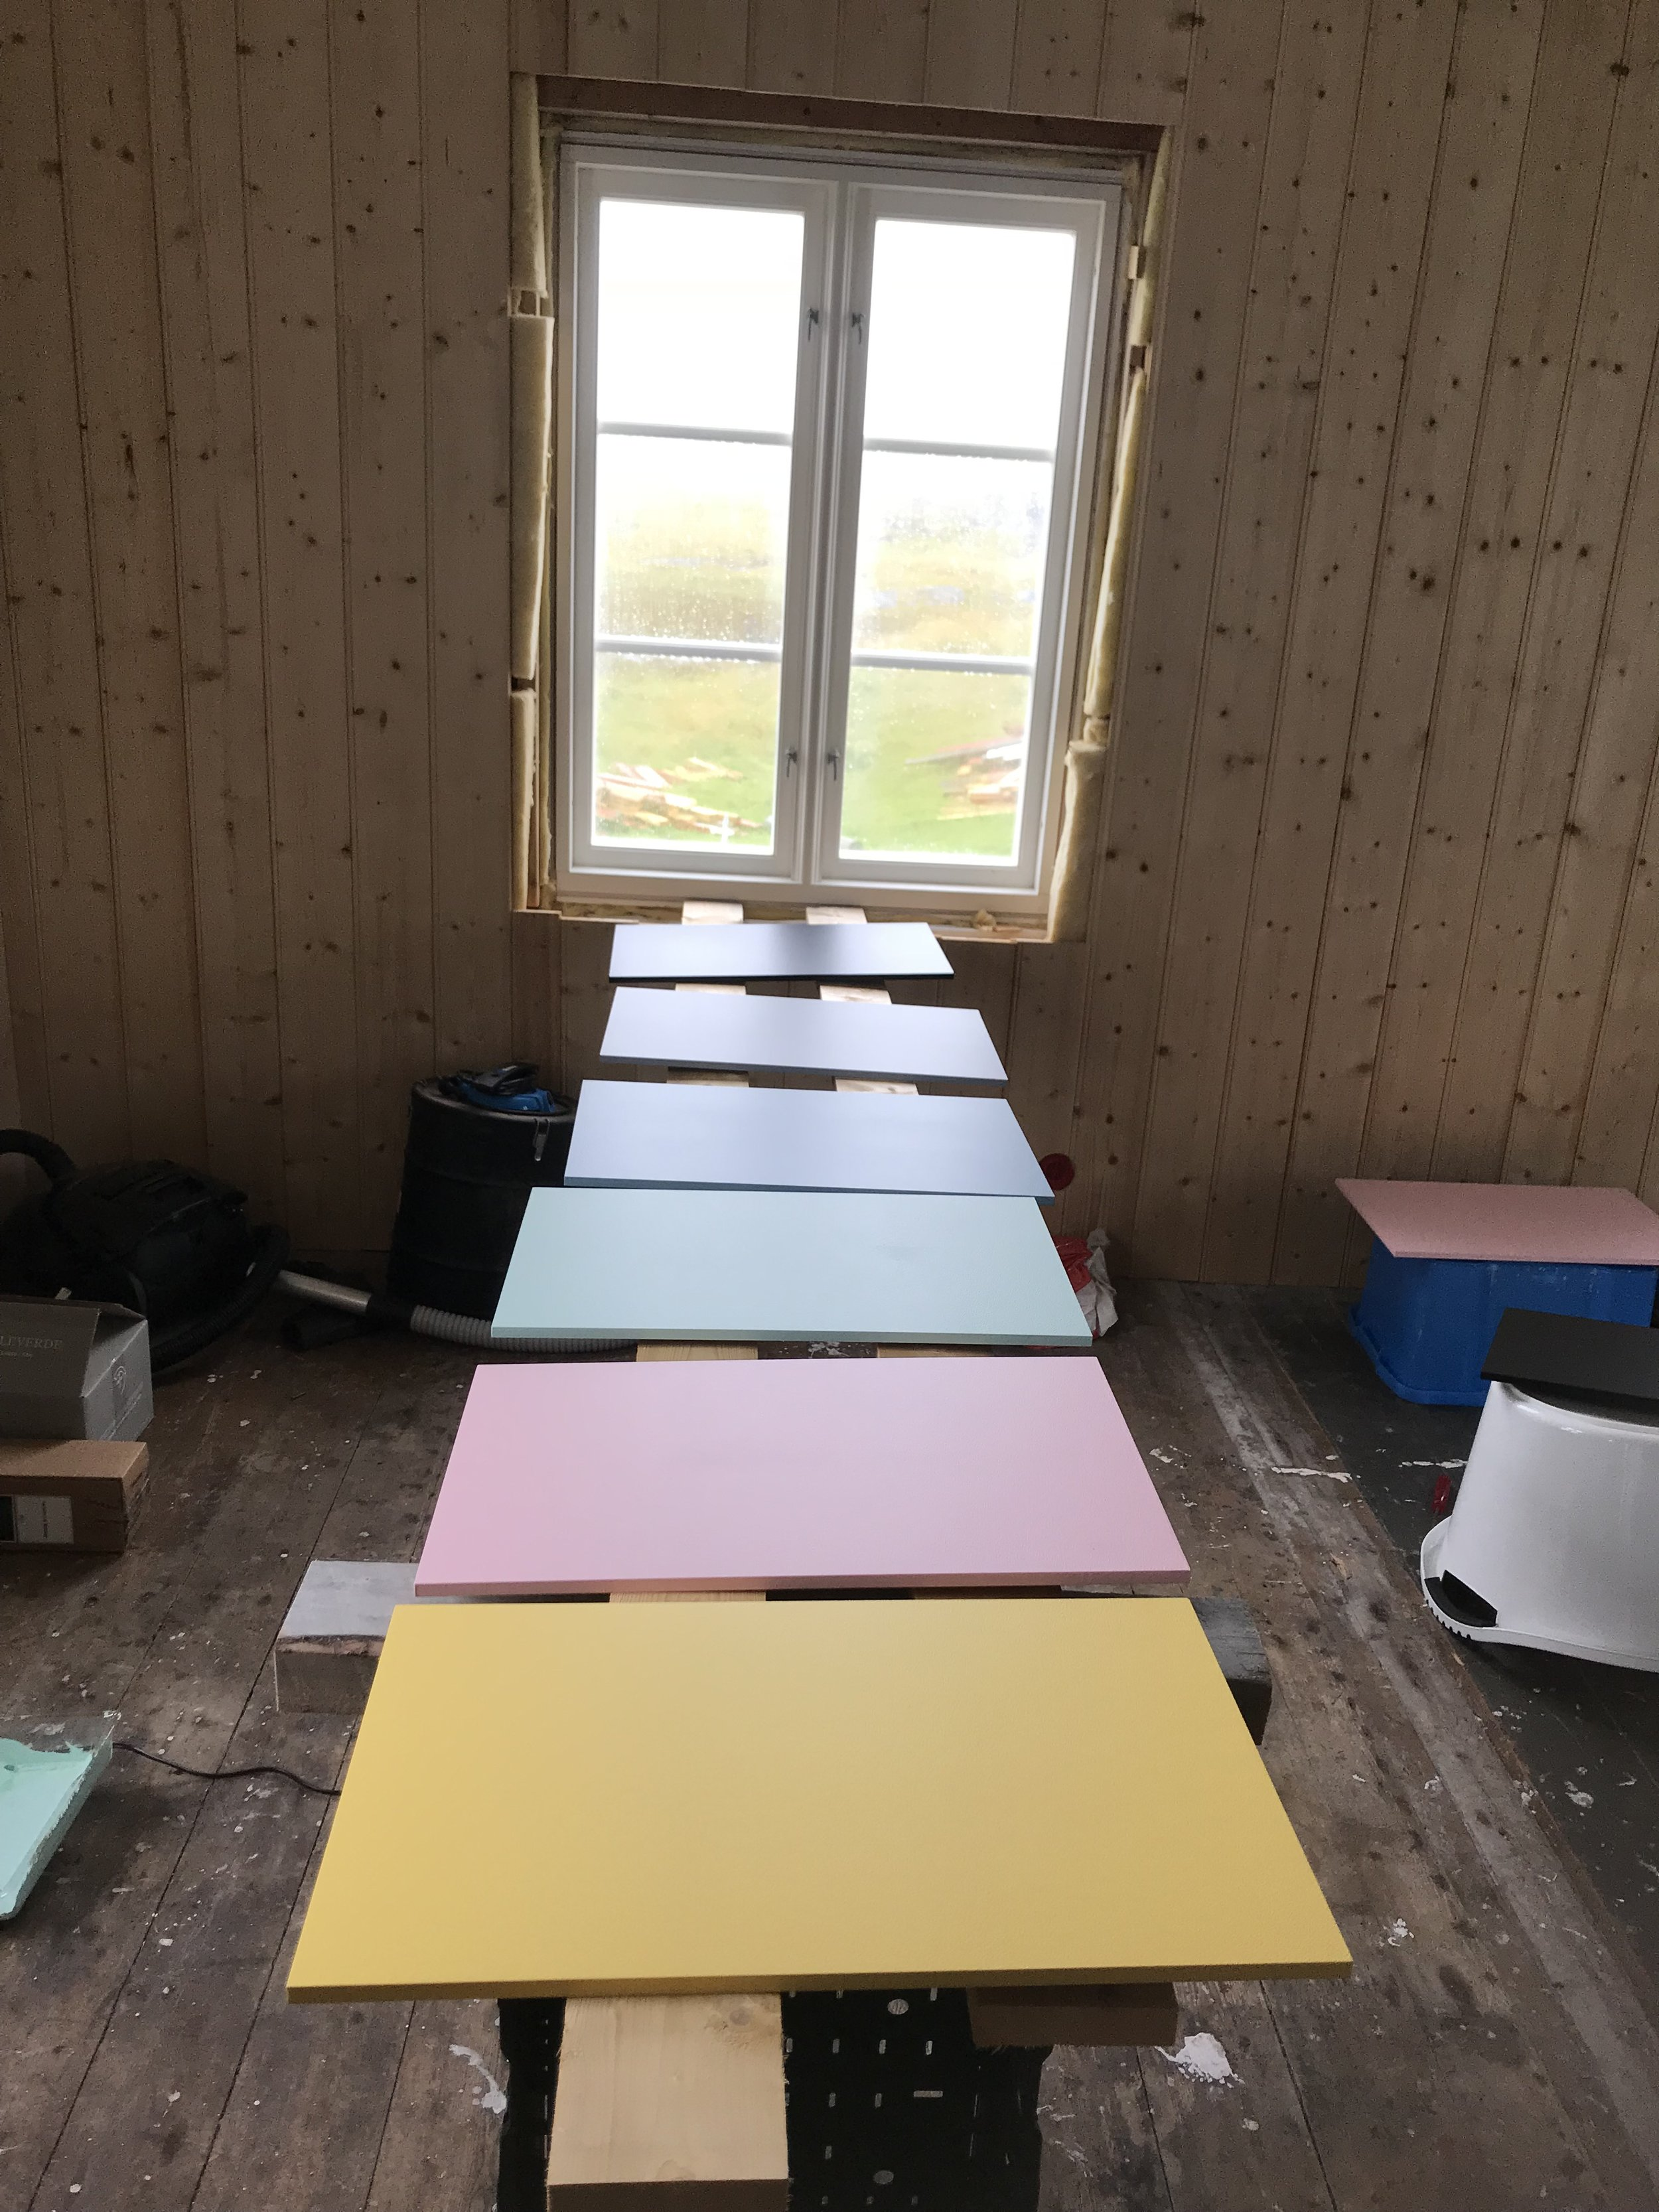 Preparation for the exhibition